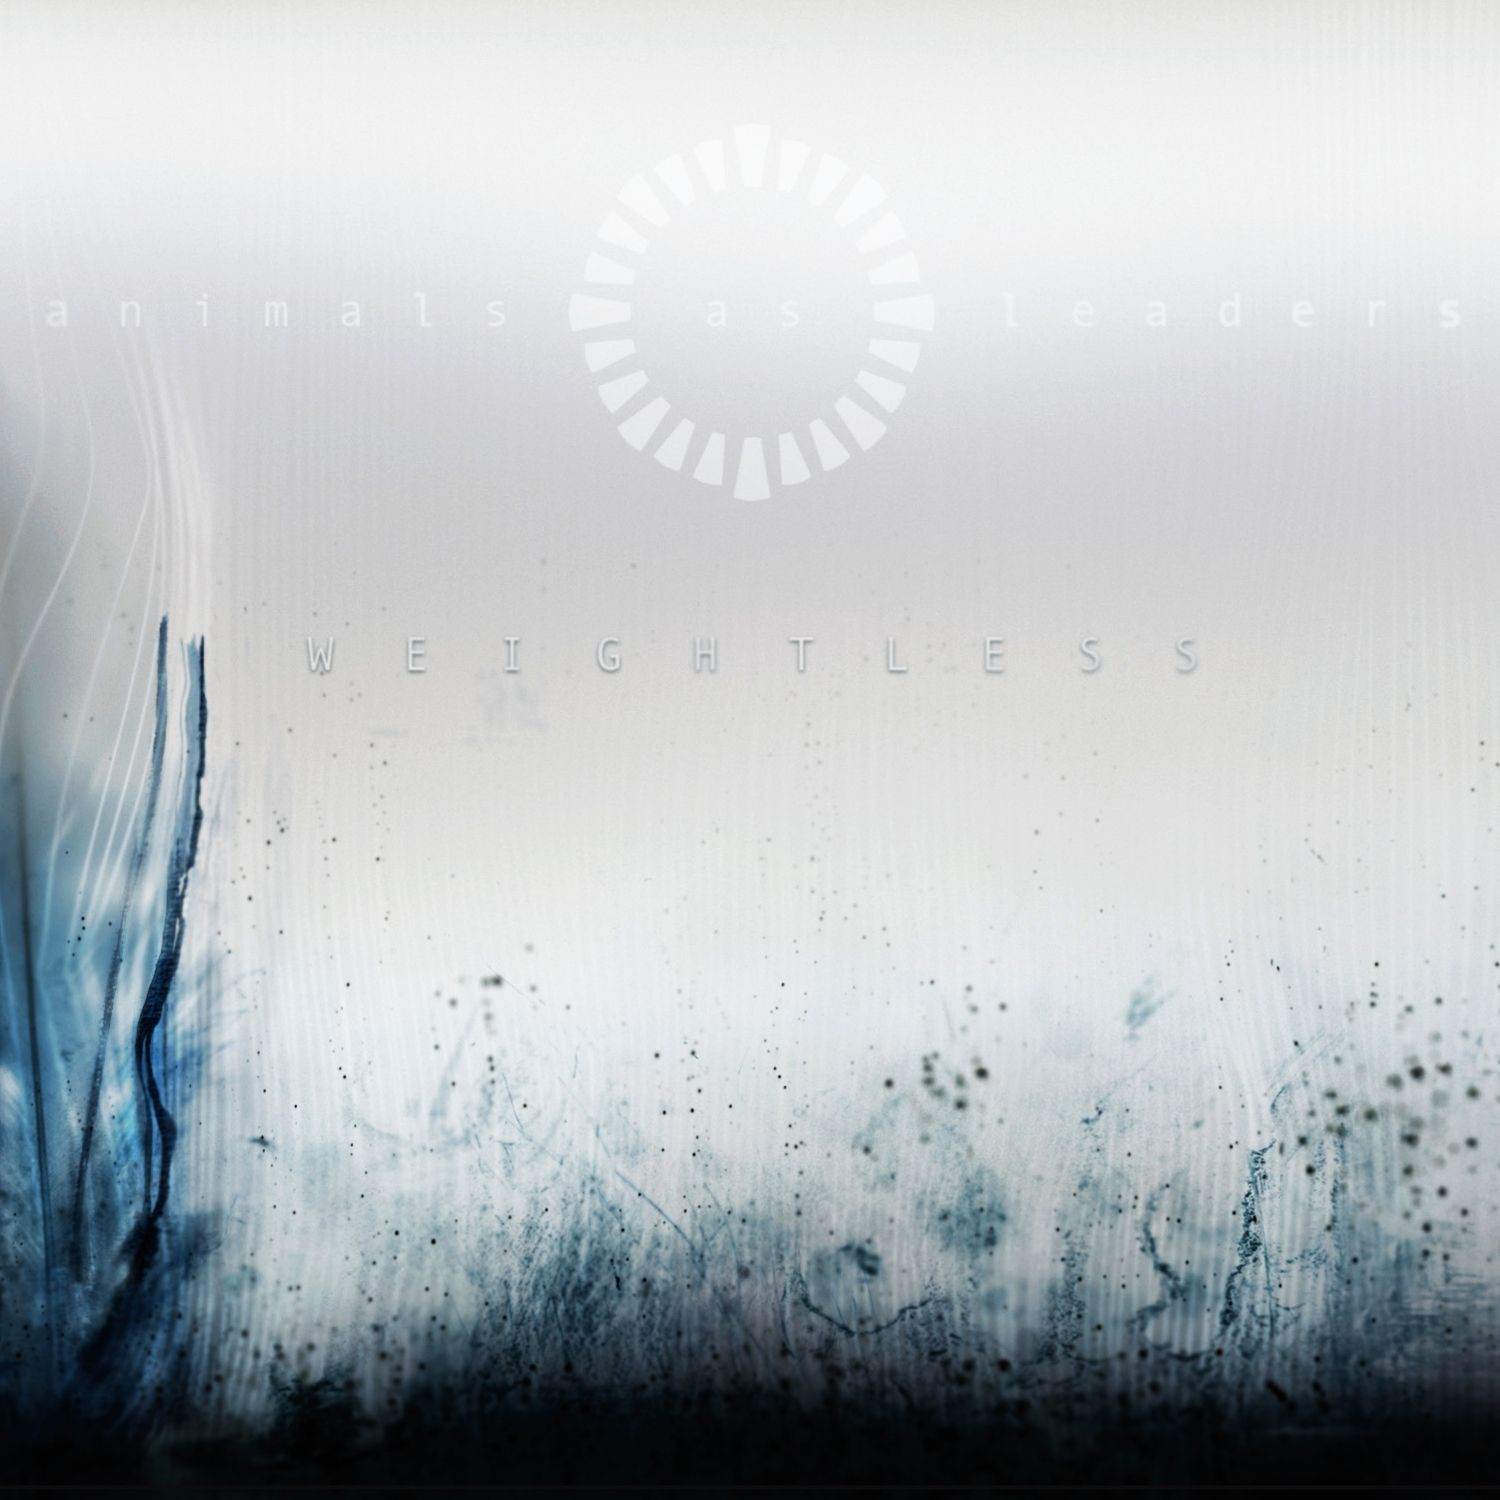 Animals As Leaders Weightless Djent Weightless Lp Vinyl